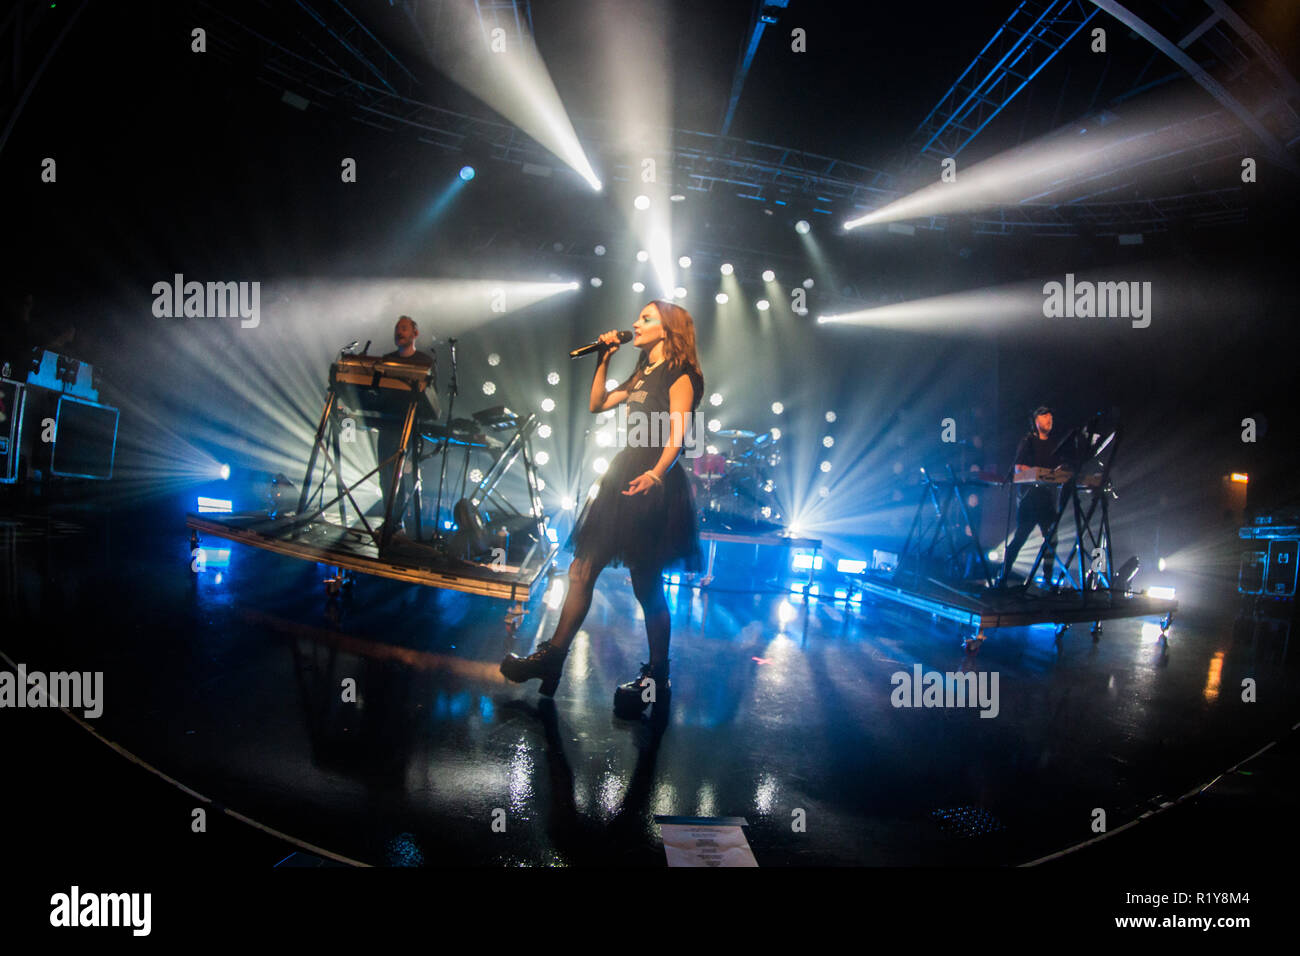 Milan, Italy. 14th November 2018. The Scottish synth-pop band CHVRCHES performs live on stage at Fabrique to present their new album 'Love Is Dead' Credit: Rodolfo Sassano/Alamy Live News - Stock Image